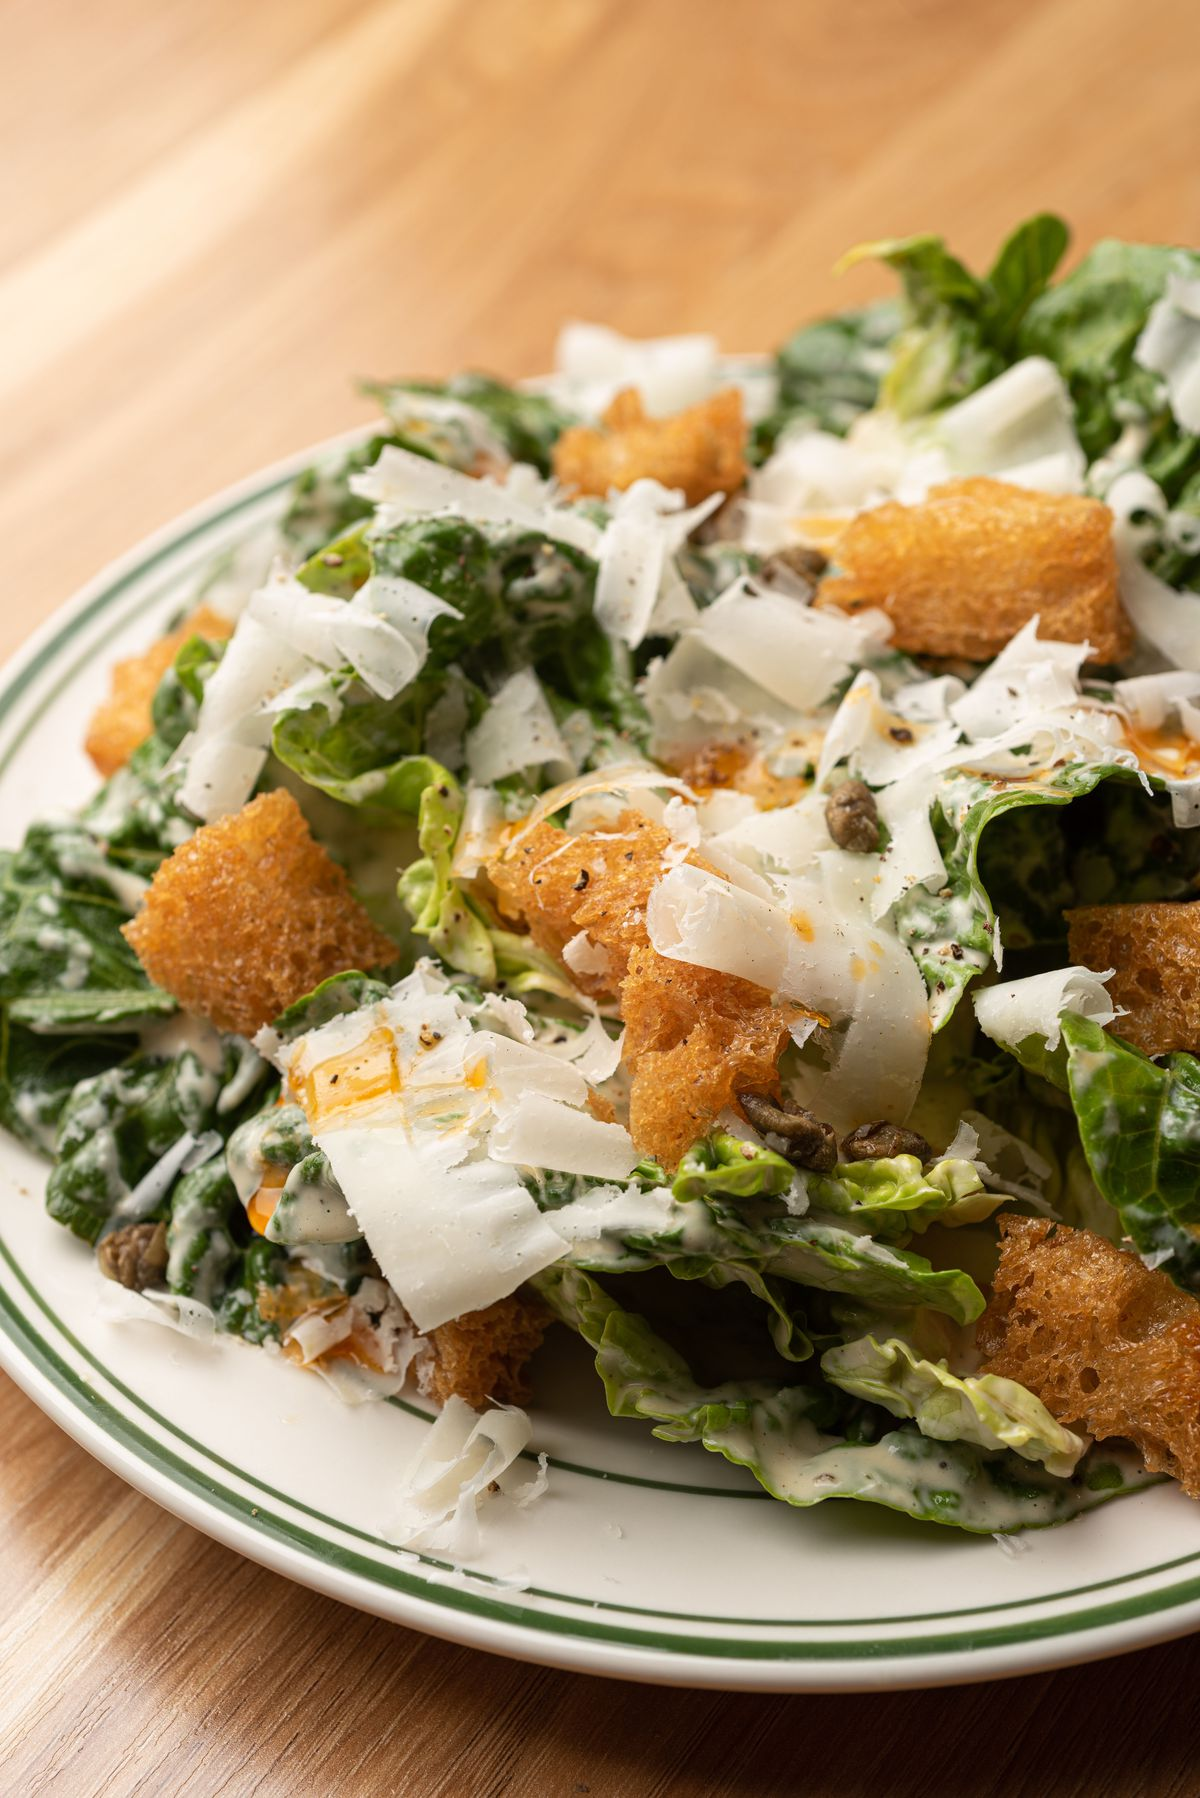 A close up shot of a salad with croutons and shaved cheese.